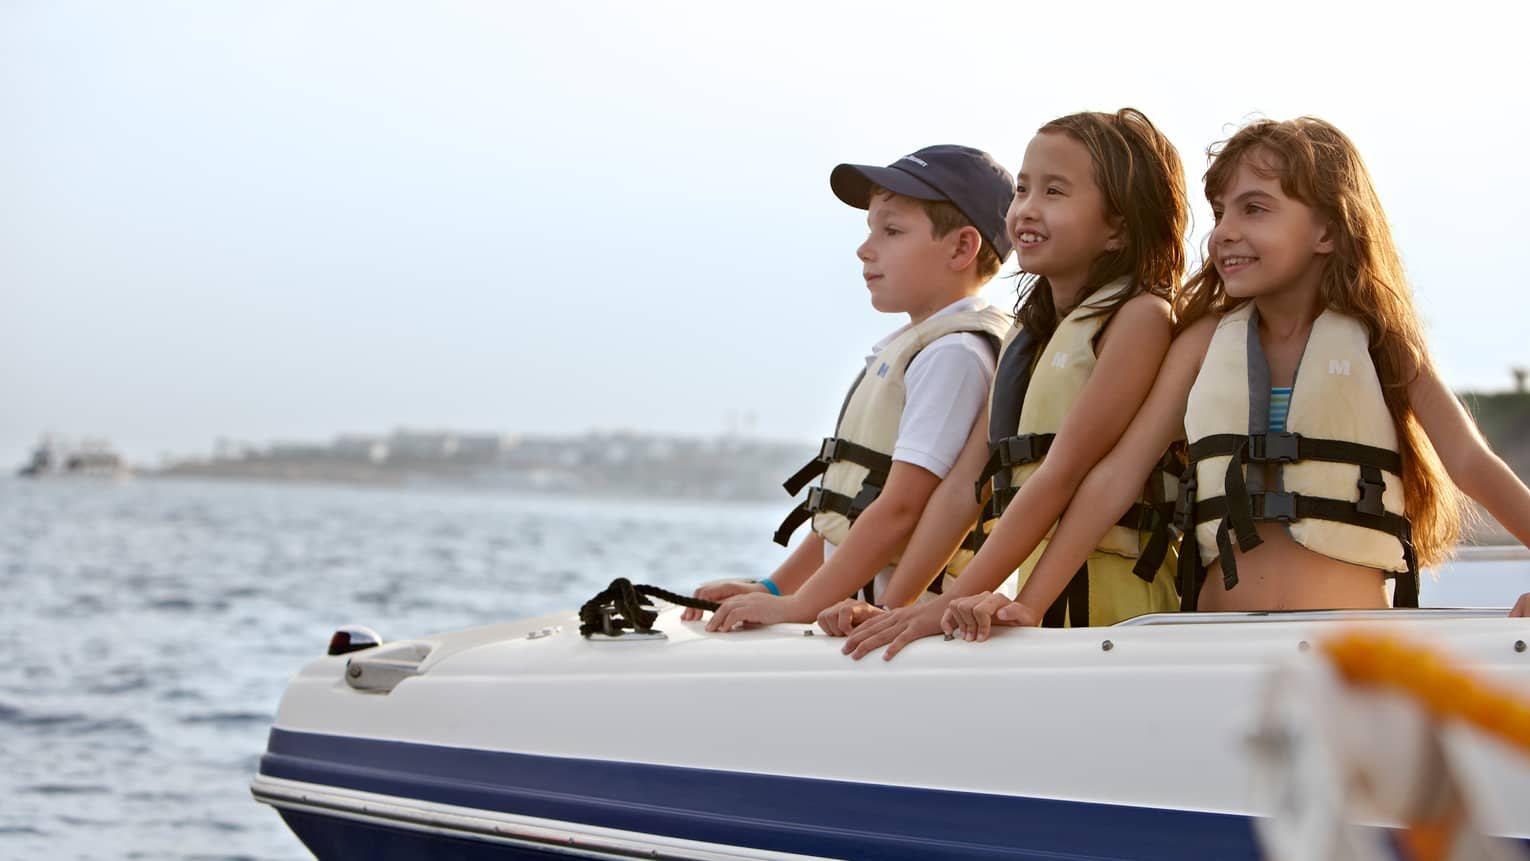 Three children in lifejackets in front of boat smile, look out on water